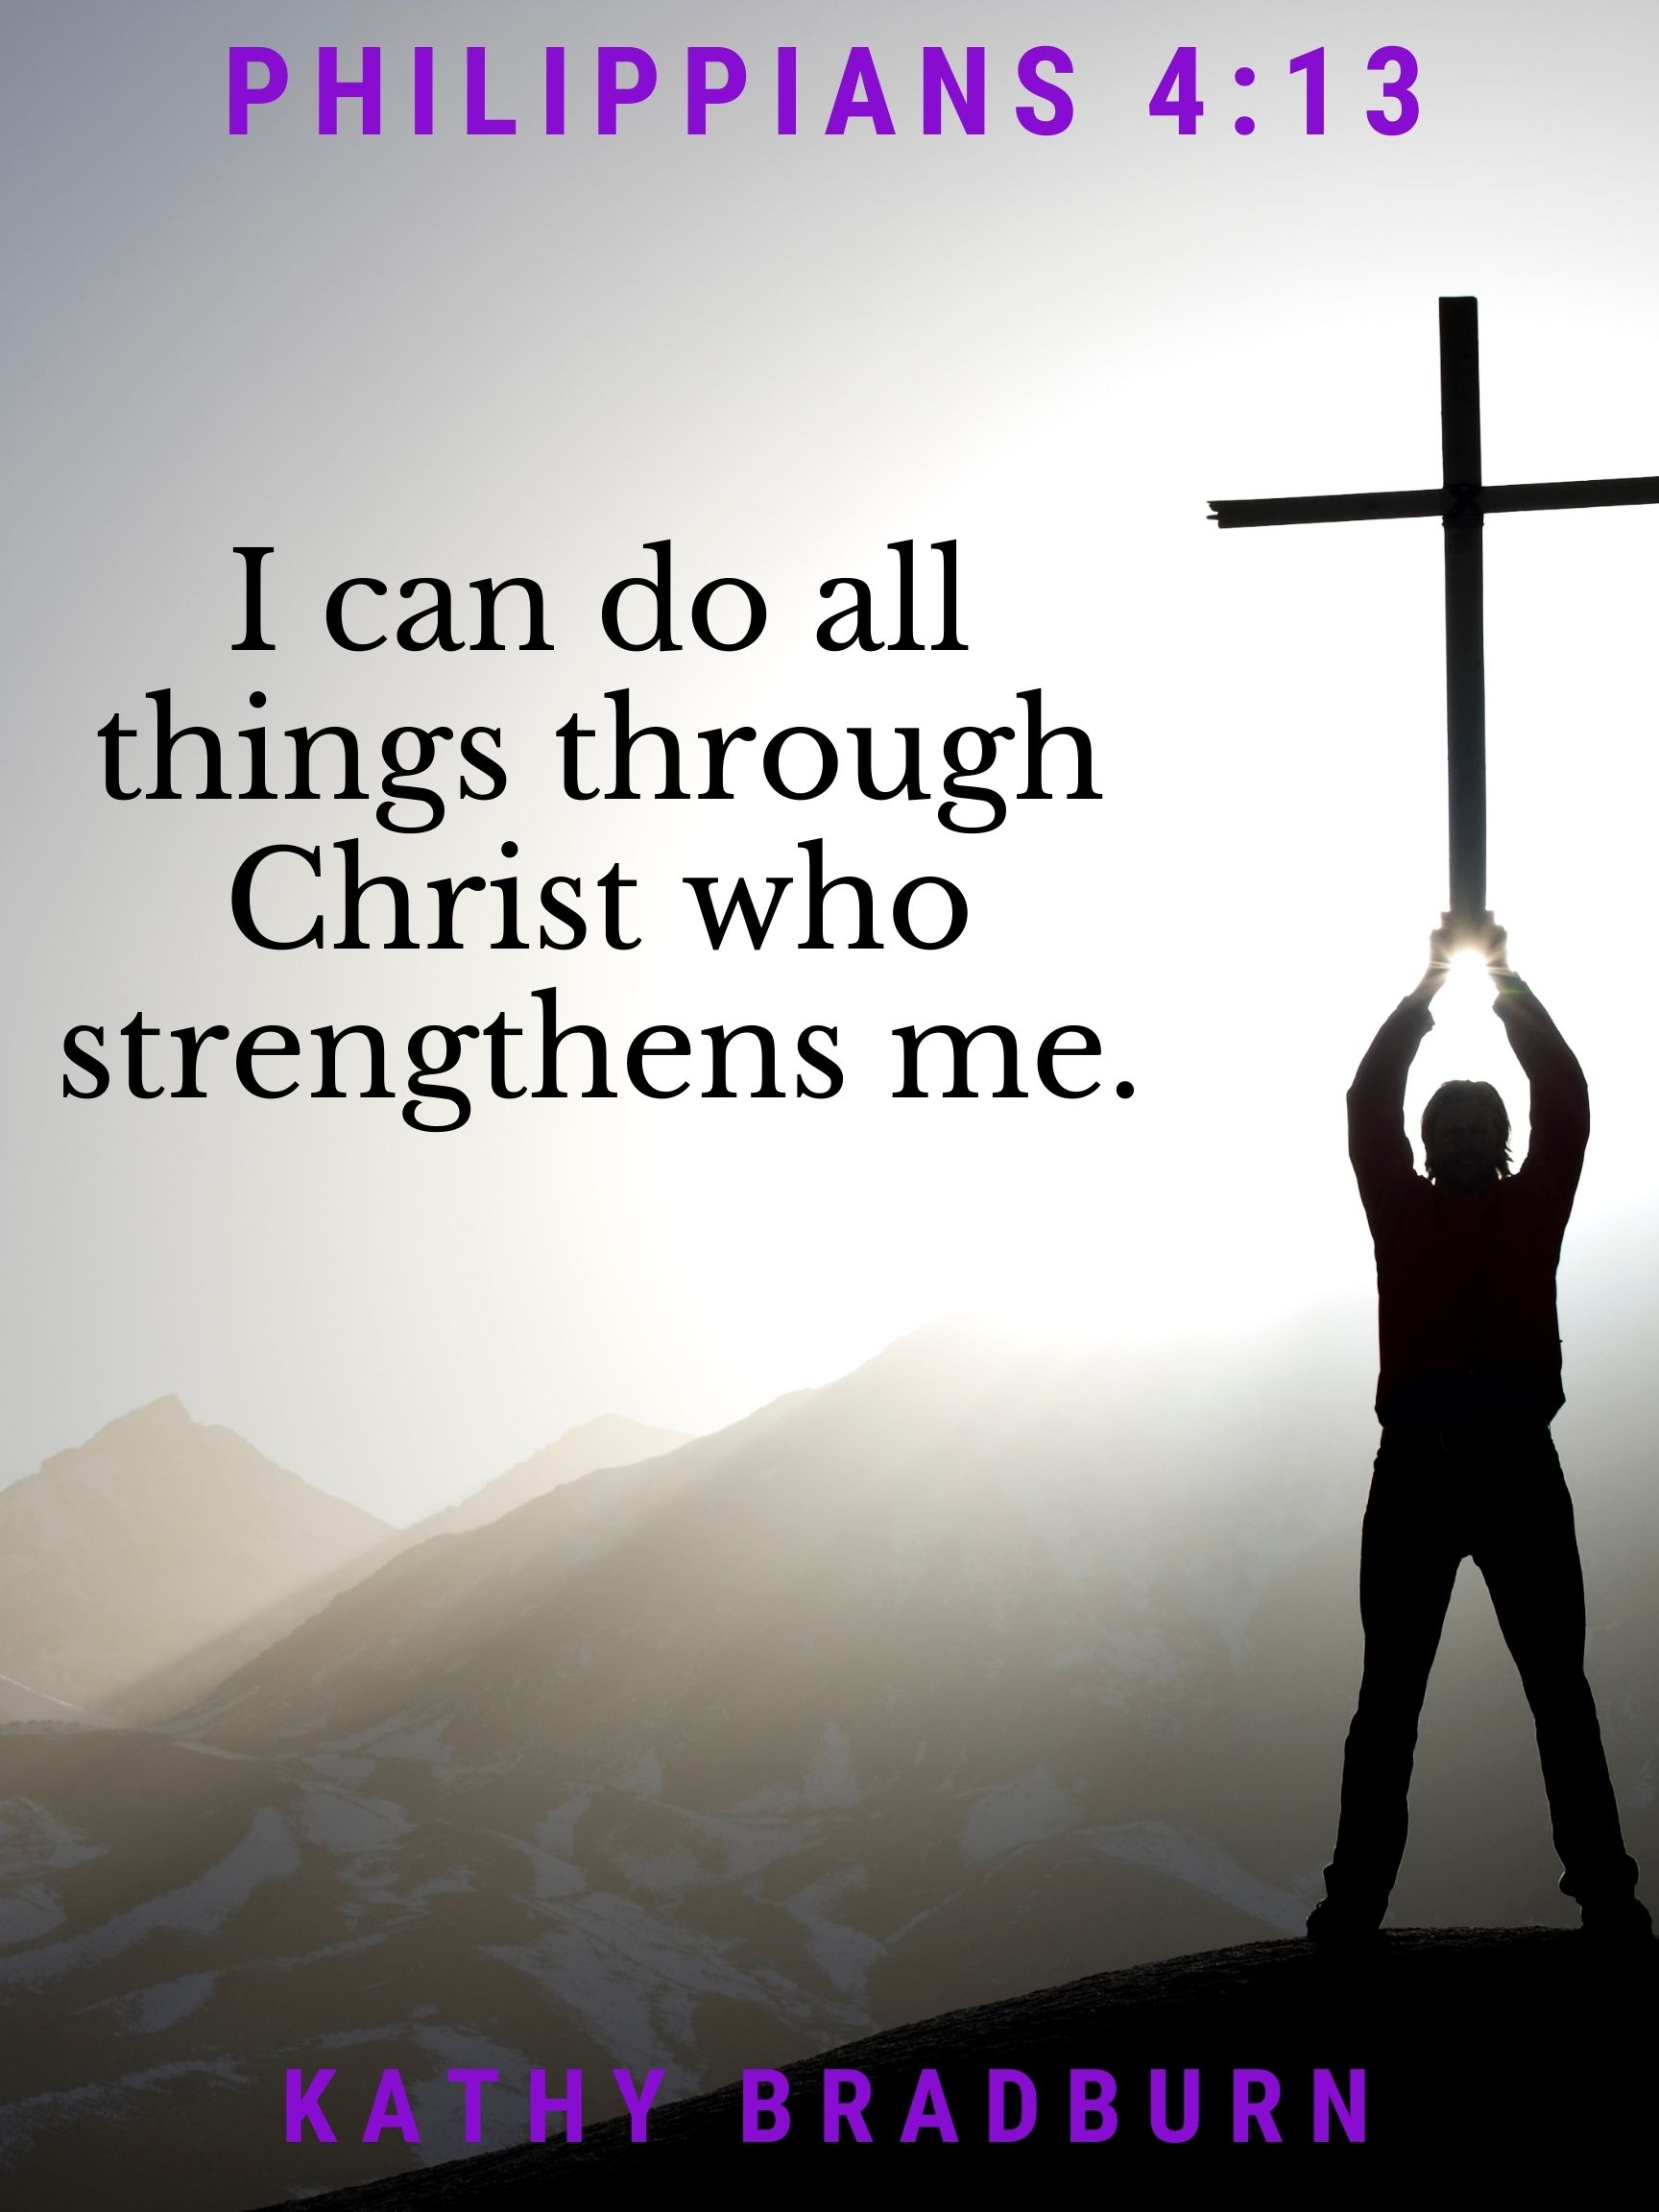 Philippians 4:13 I can do all things through Christ who strengthens me. Kathy Bradburn